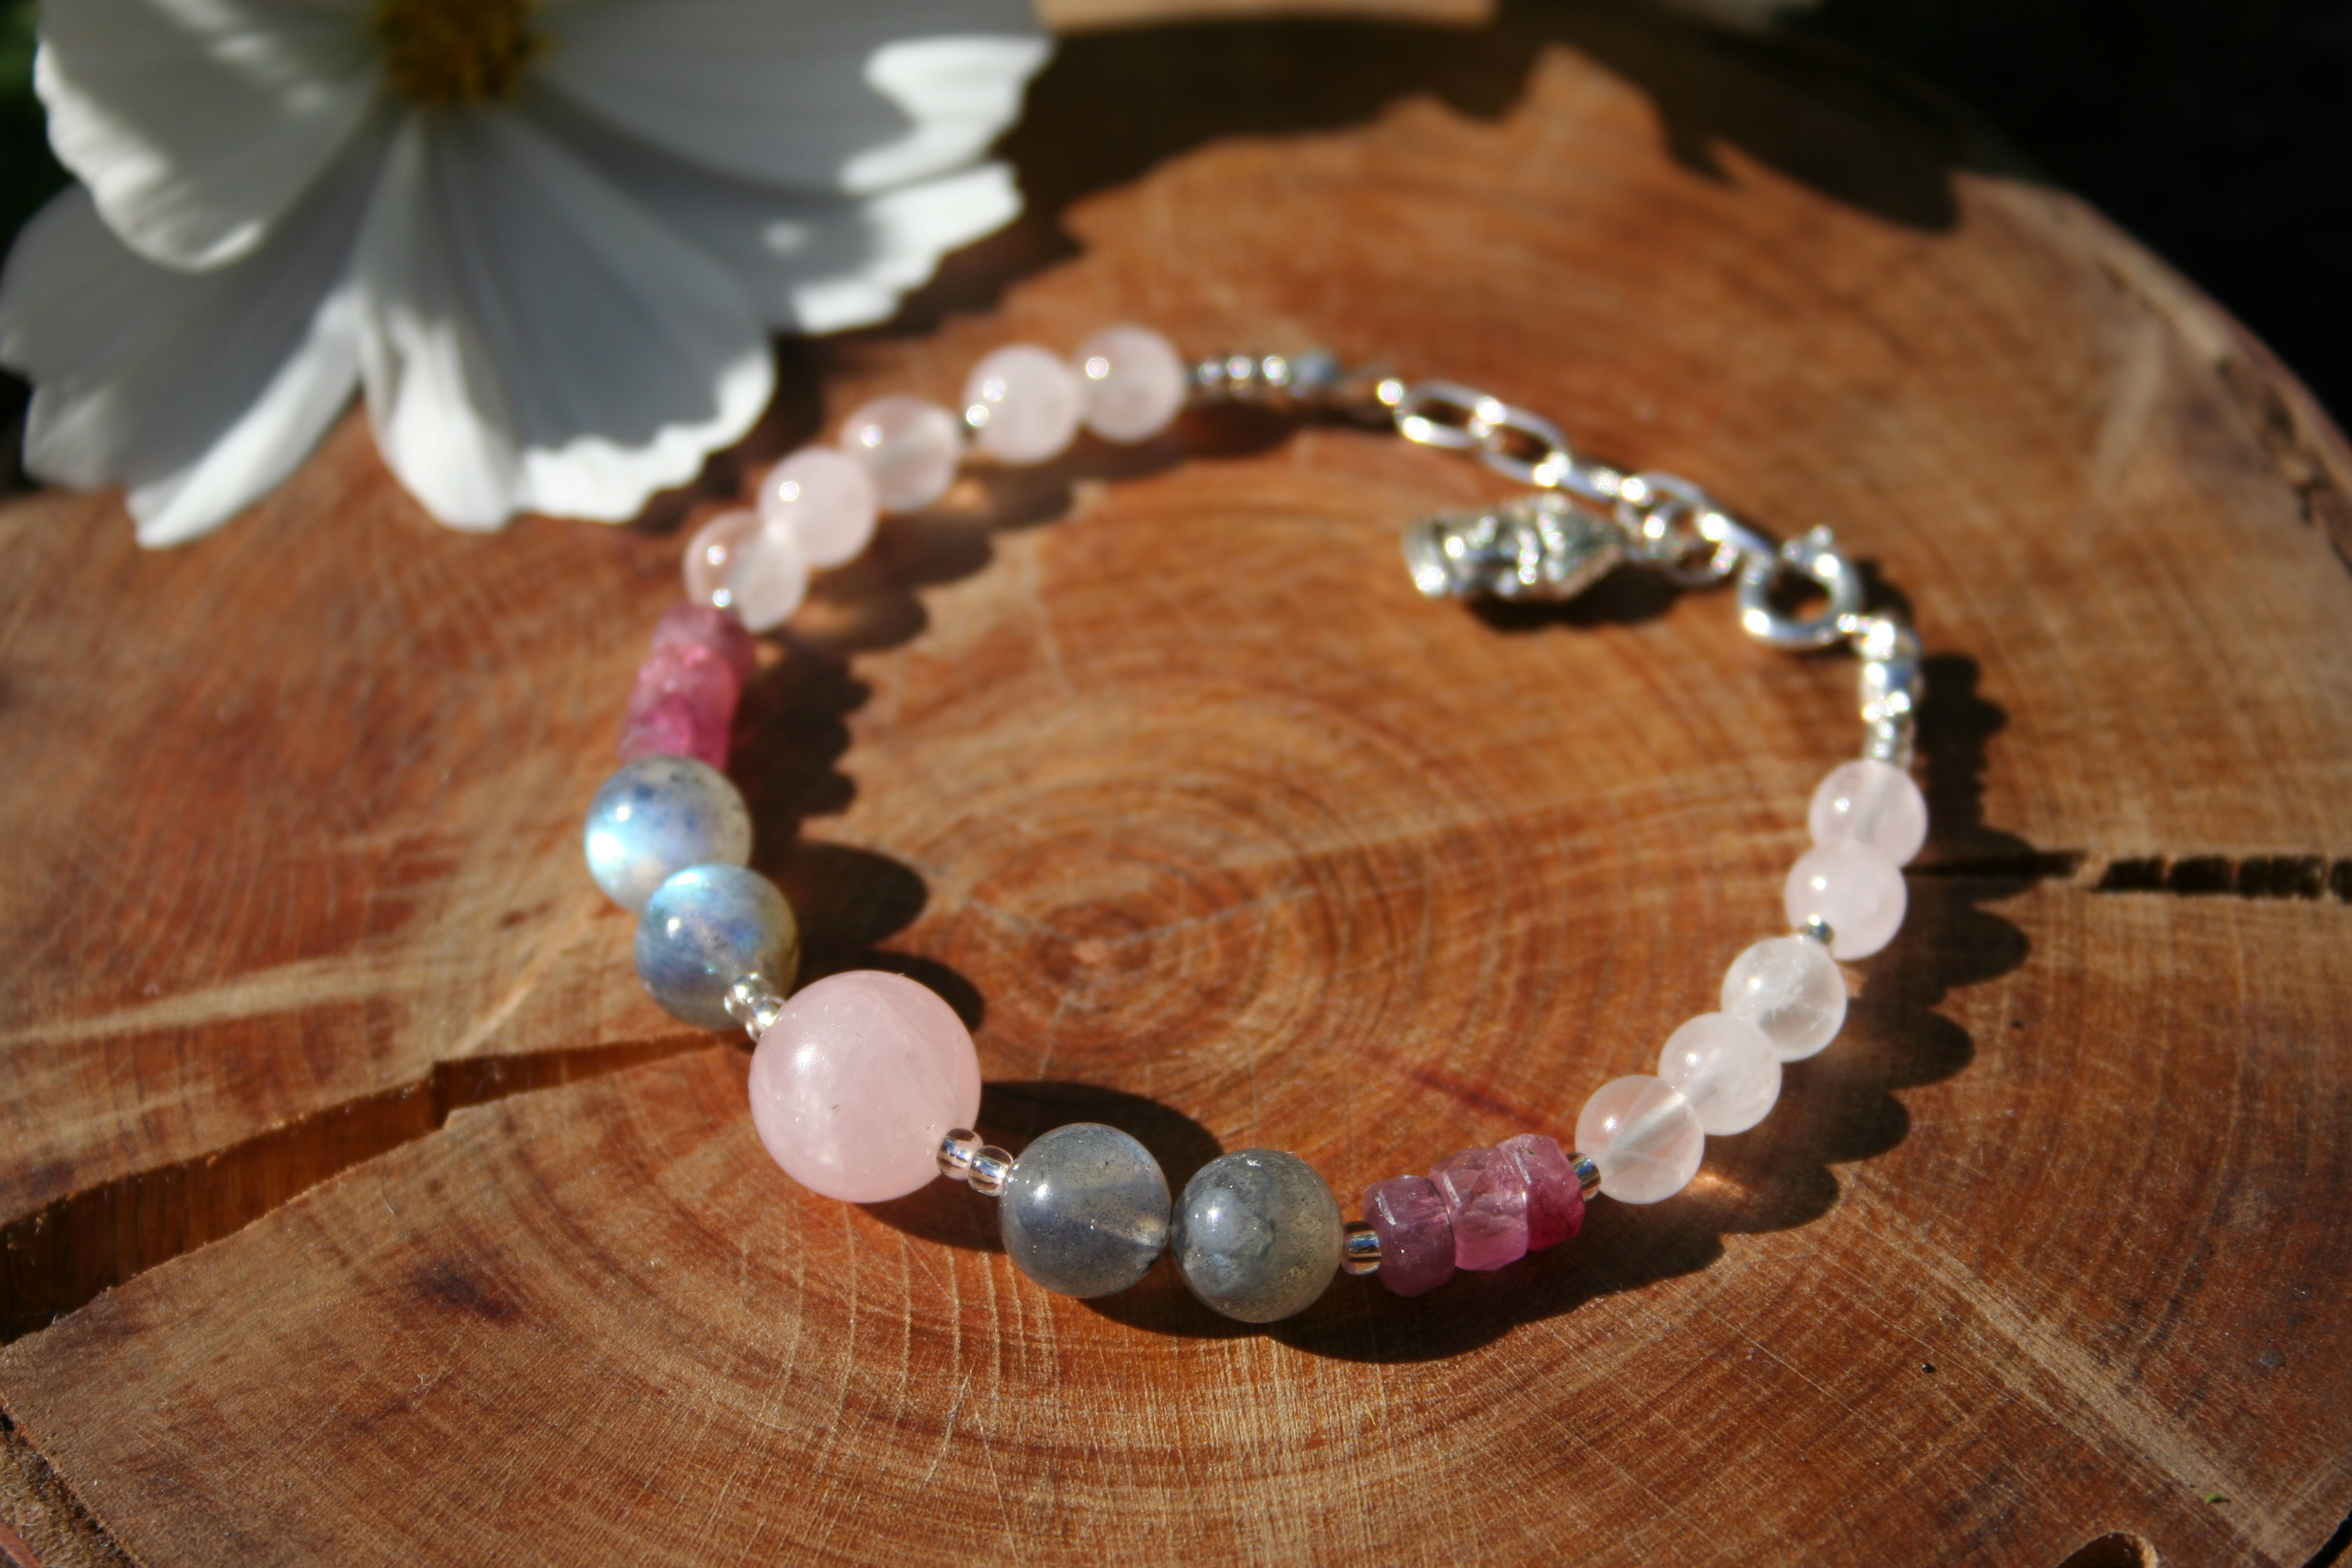 Mother's Nurturing Bracelet